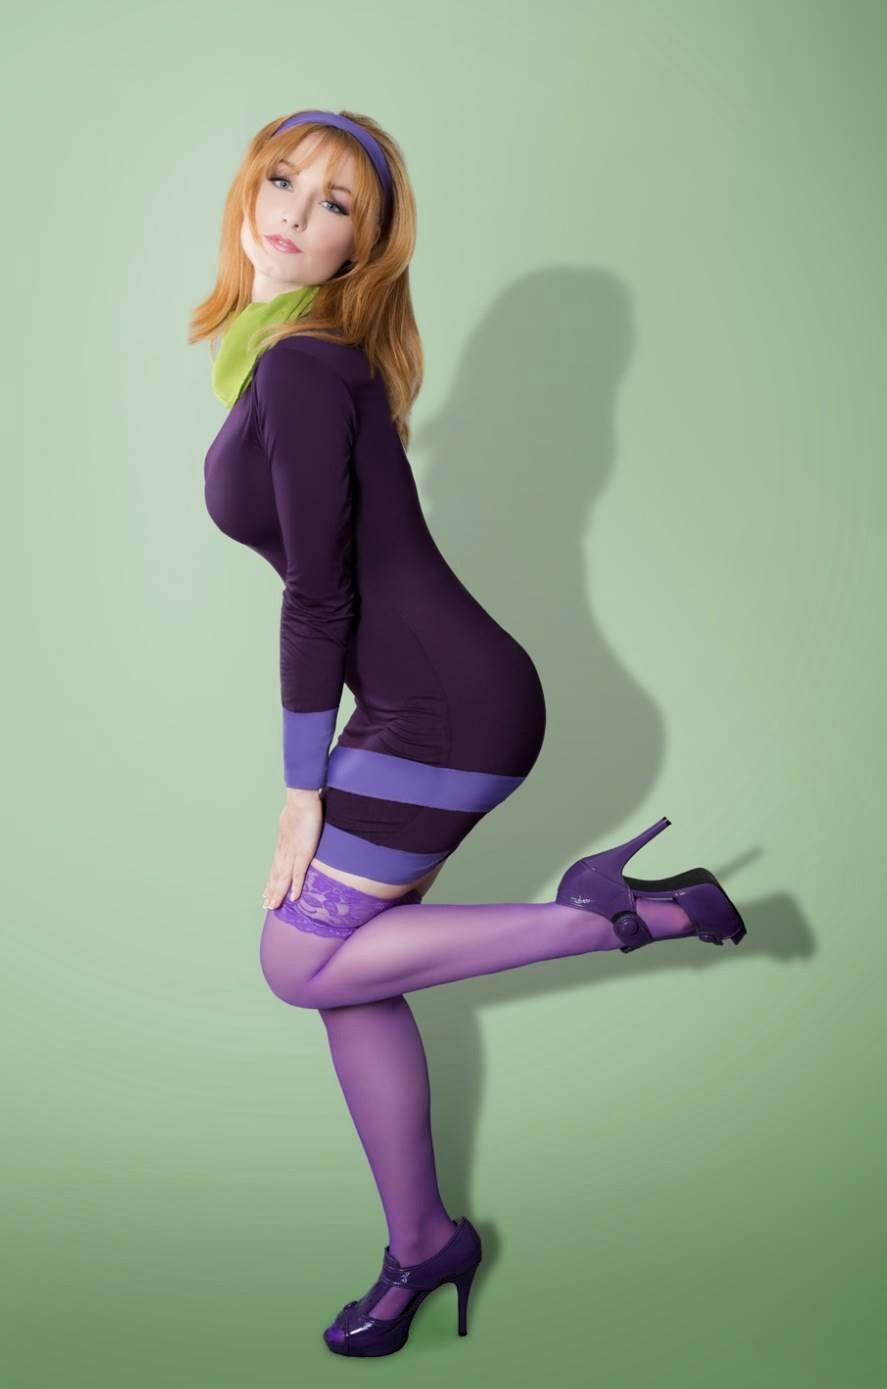 Velma and daphne - 3 part 1